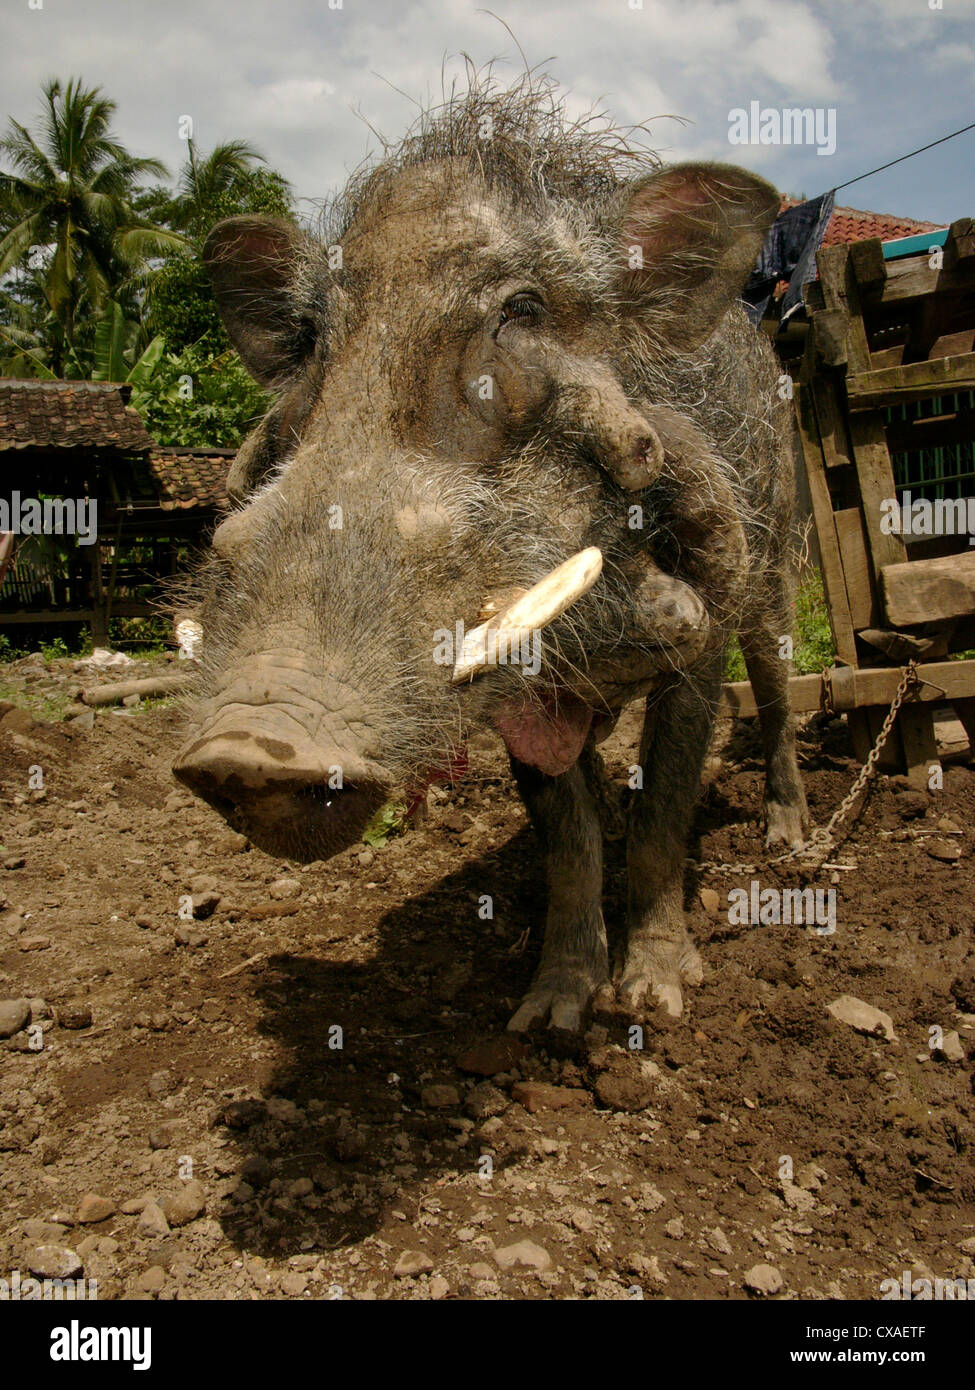 A wild jungle boar waits to enter a legal pig-baiting arena in West Java, Indonesia where it will be attacked by - Stock Image